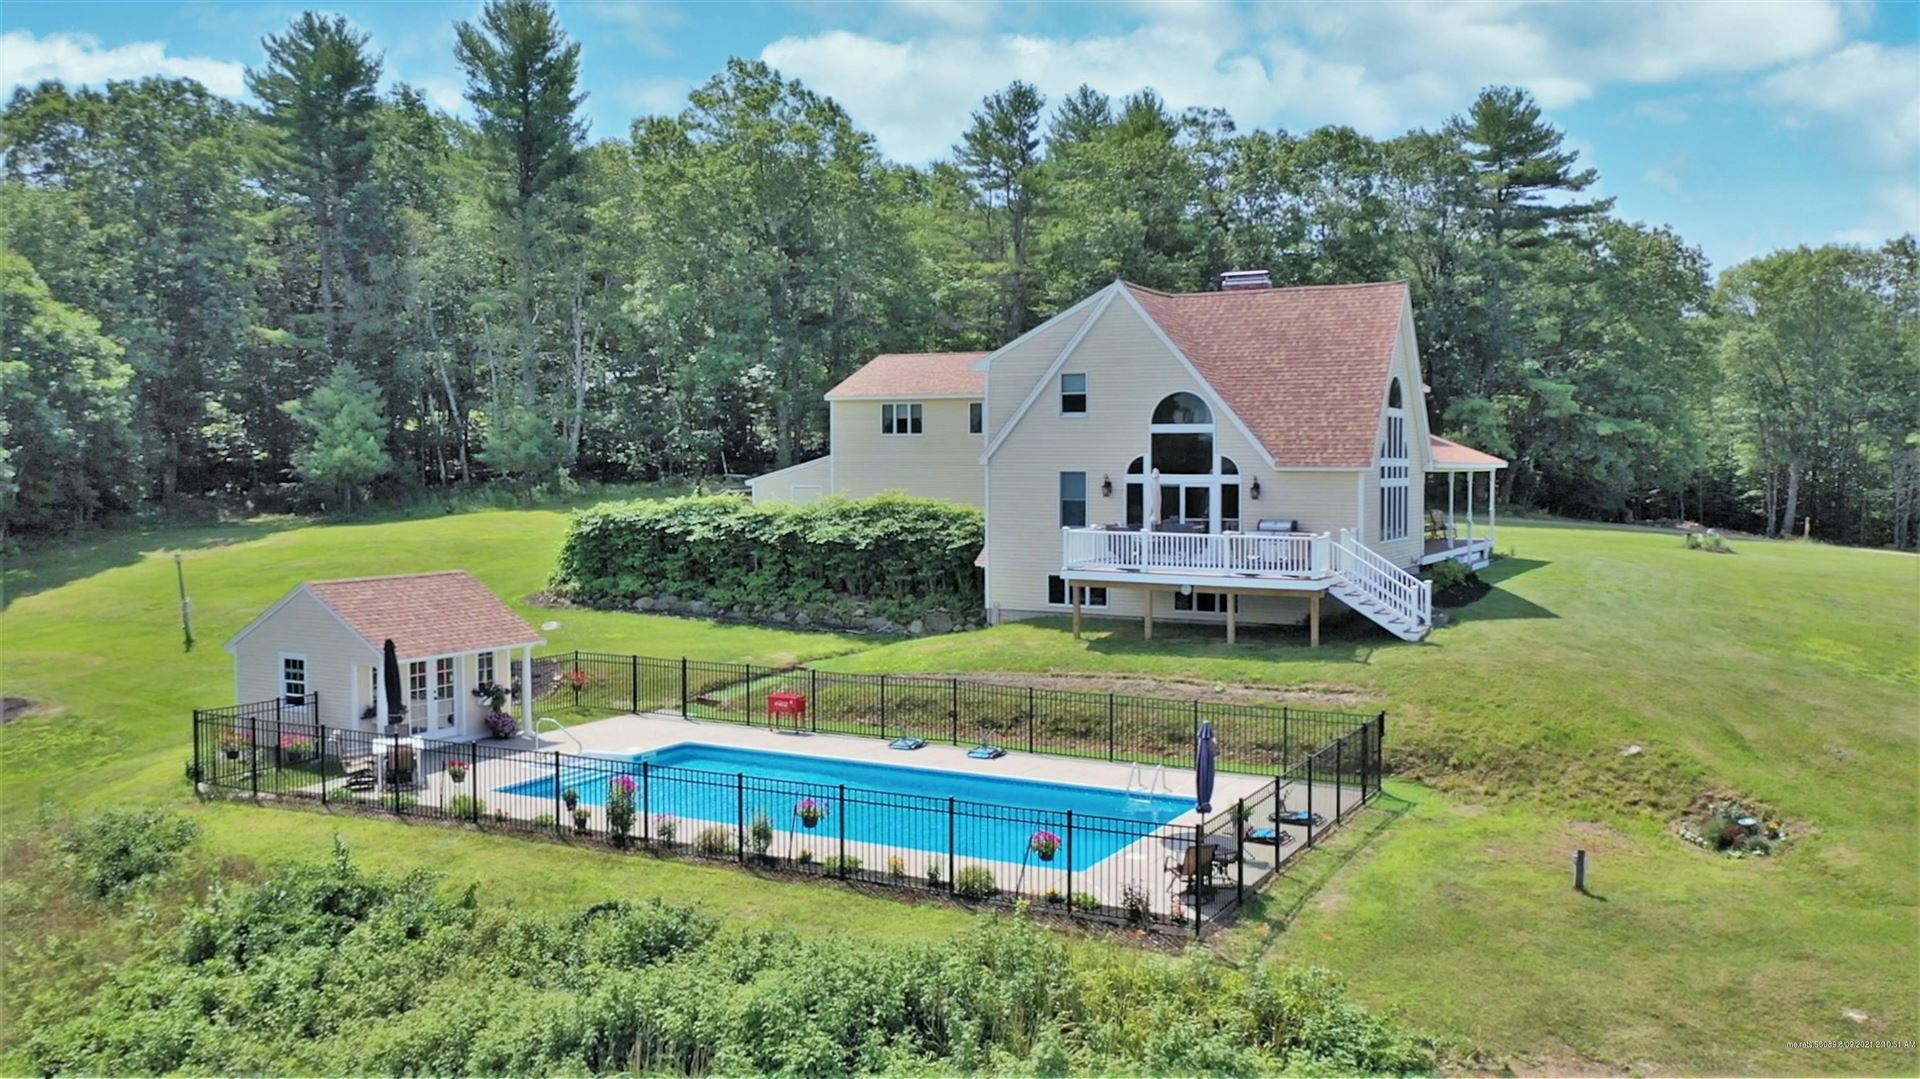 Photo of 86 Orchard Road, Parsonsfield, ME 04047 (MLS # 1503824)